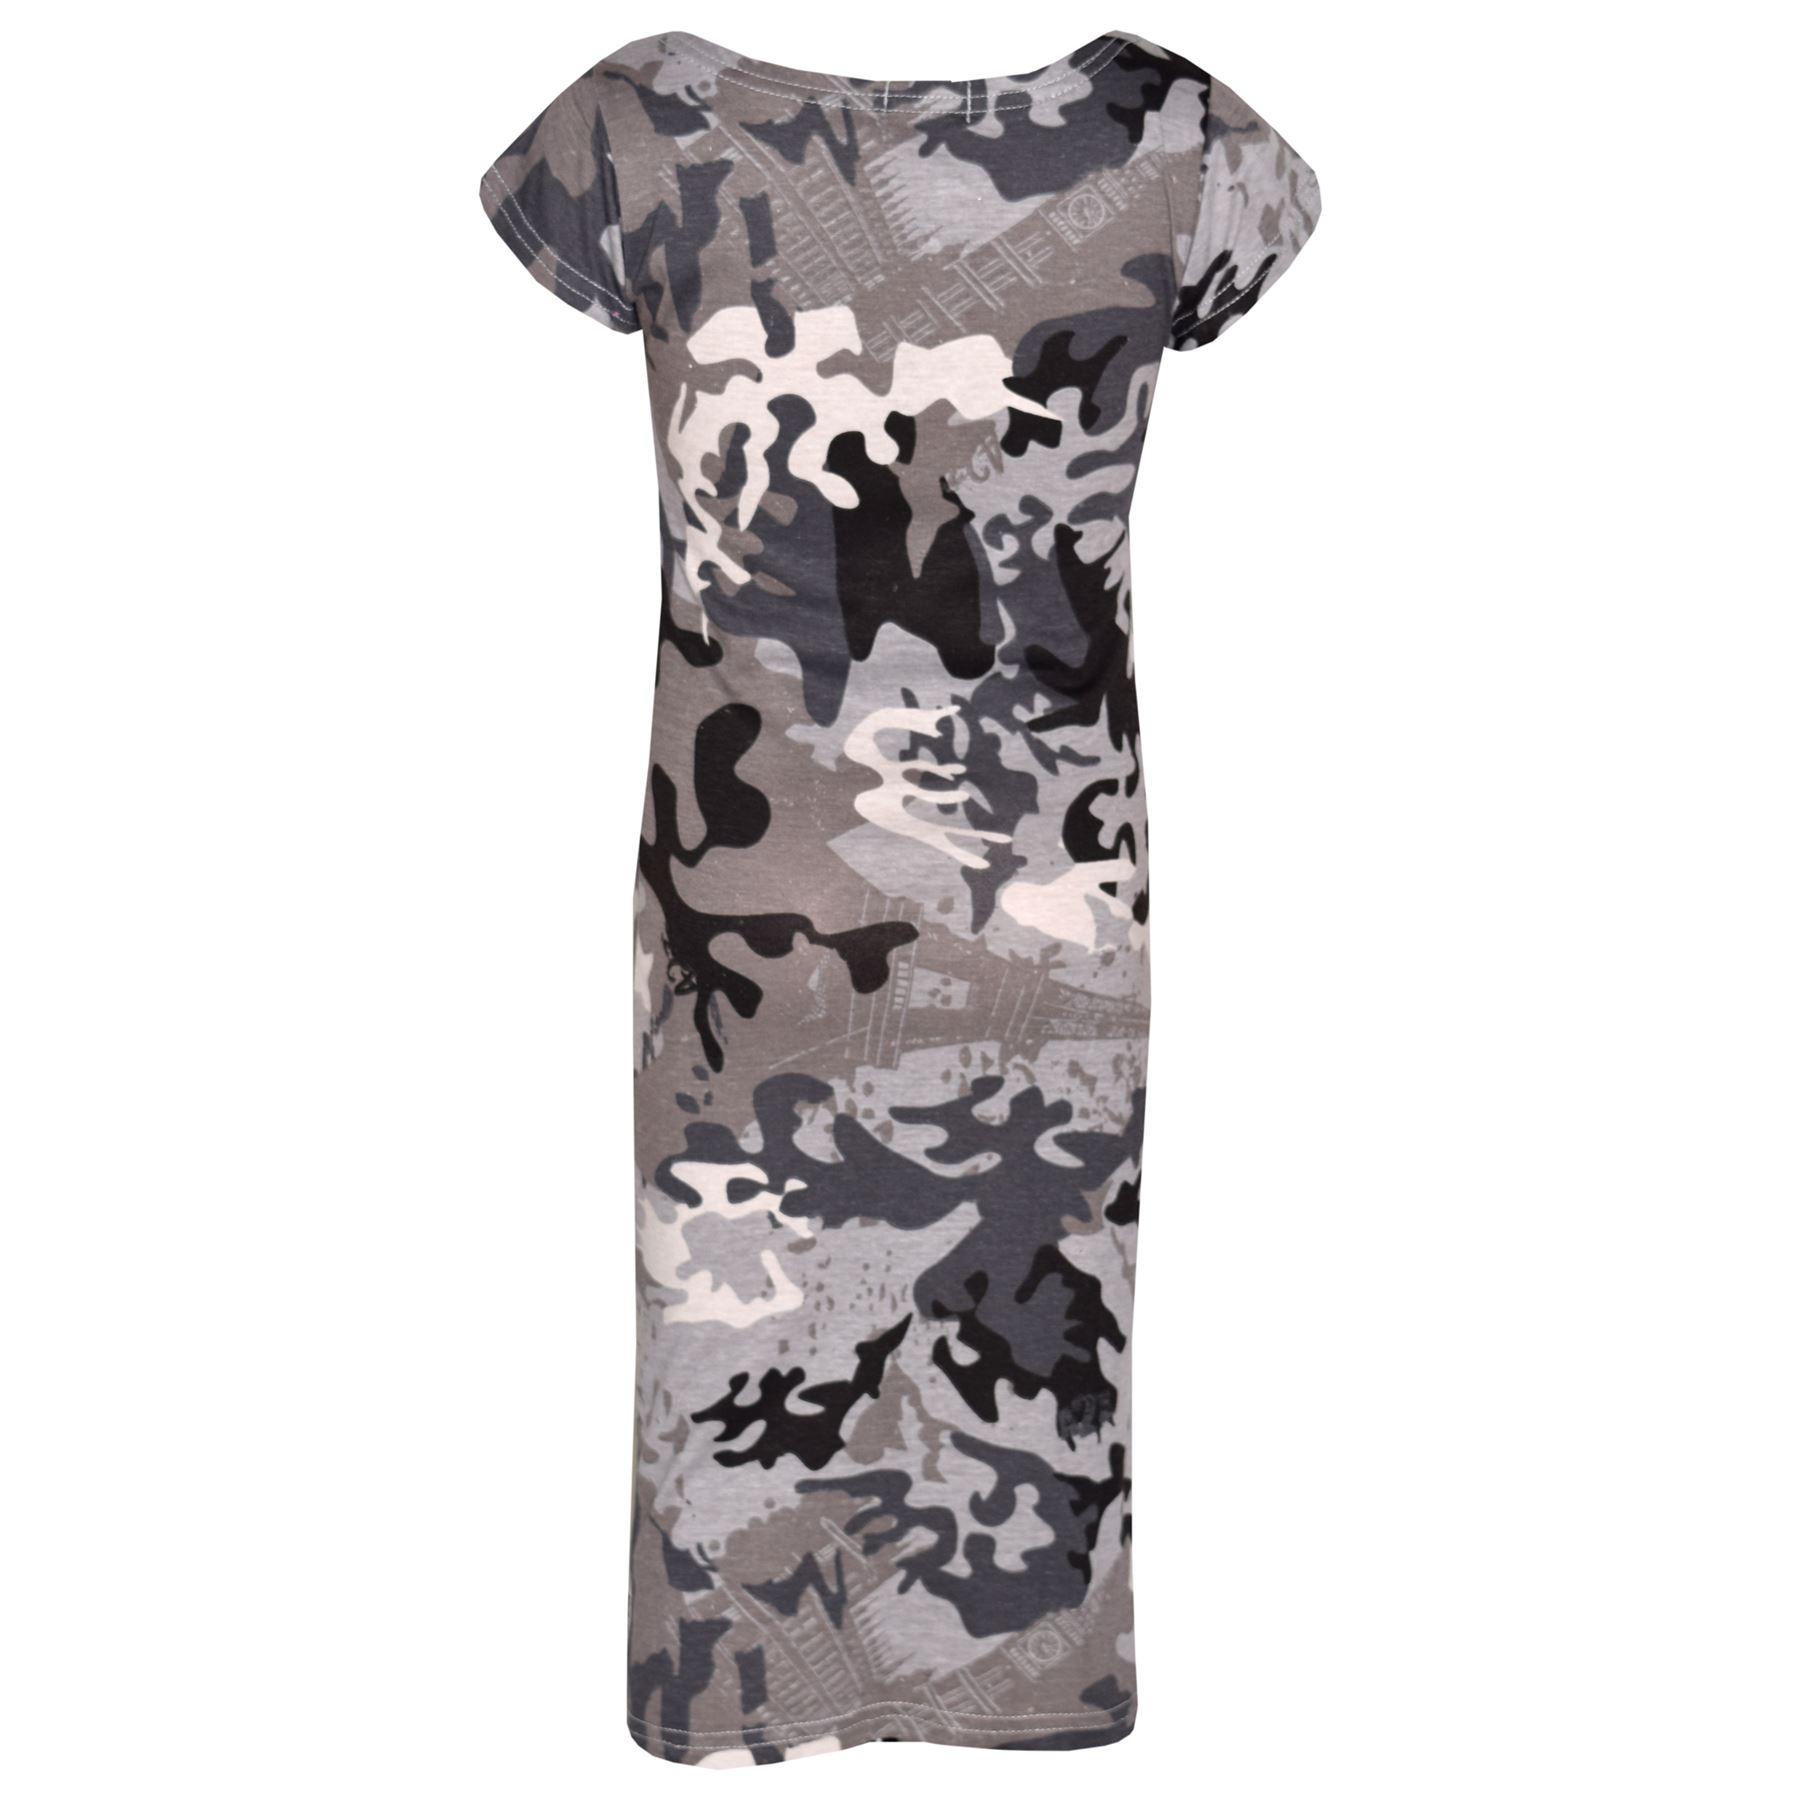 Girls-Dress-Kids-Camouflage-Print-Summer-Party-Bodycon-Midi-Dresses-5-13-Years thumbnail 5